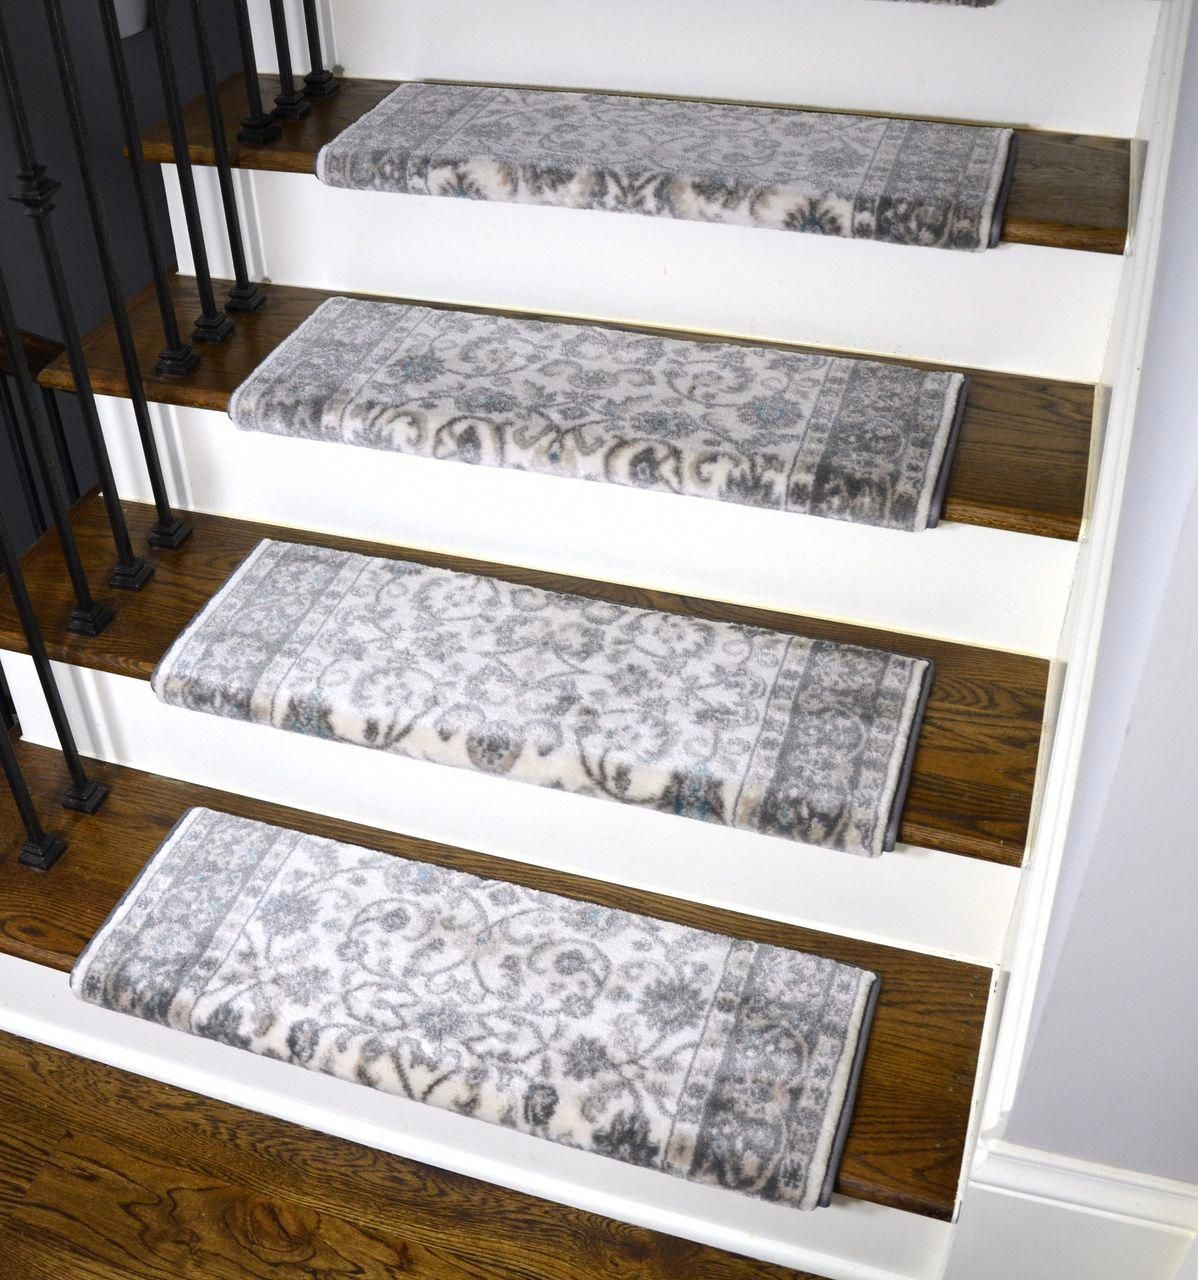 Carpet Runners For Stairs Amazon In 2020 Stair Runner Carpet | Textured Carpet On Stairs | Floral | Wide Stripe | Short Cut Pile | Stylish | Brown